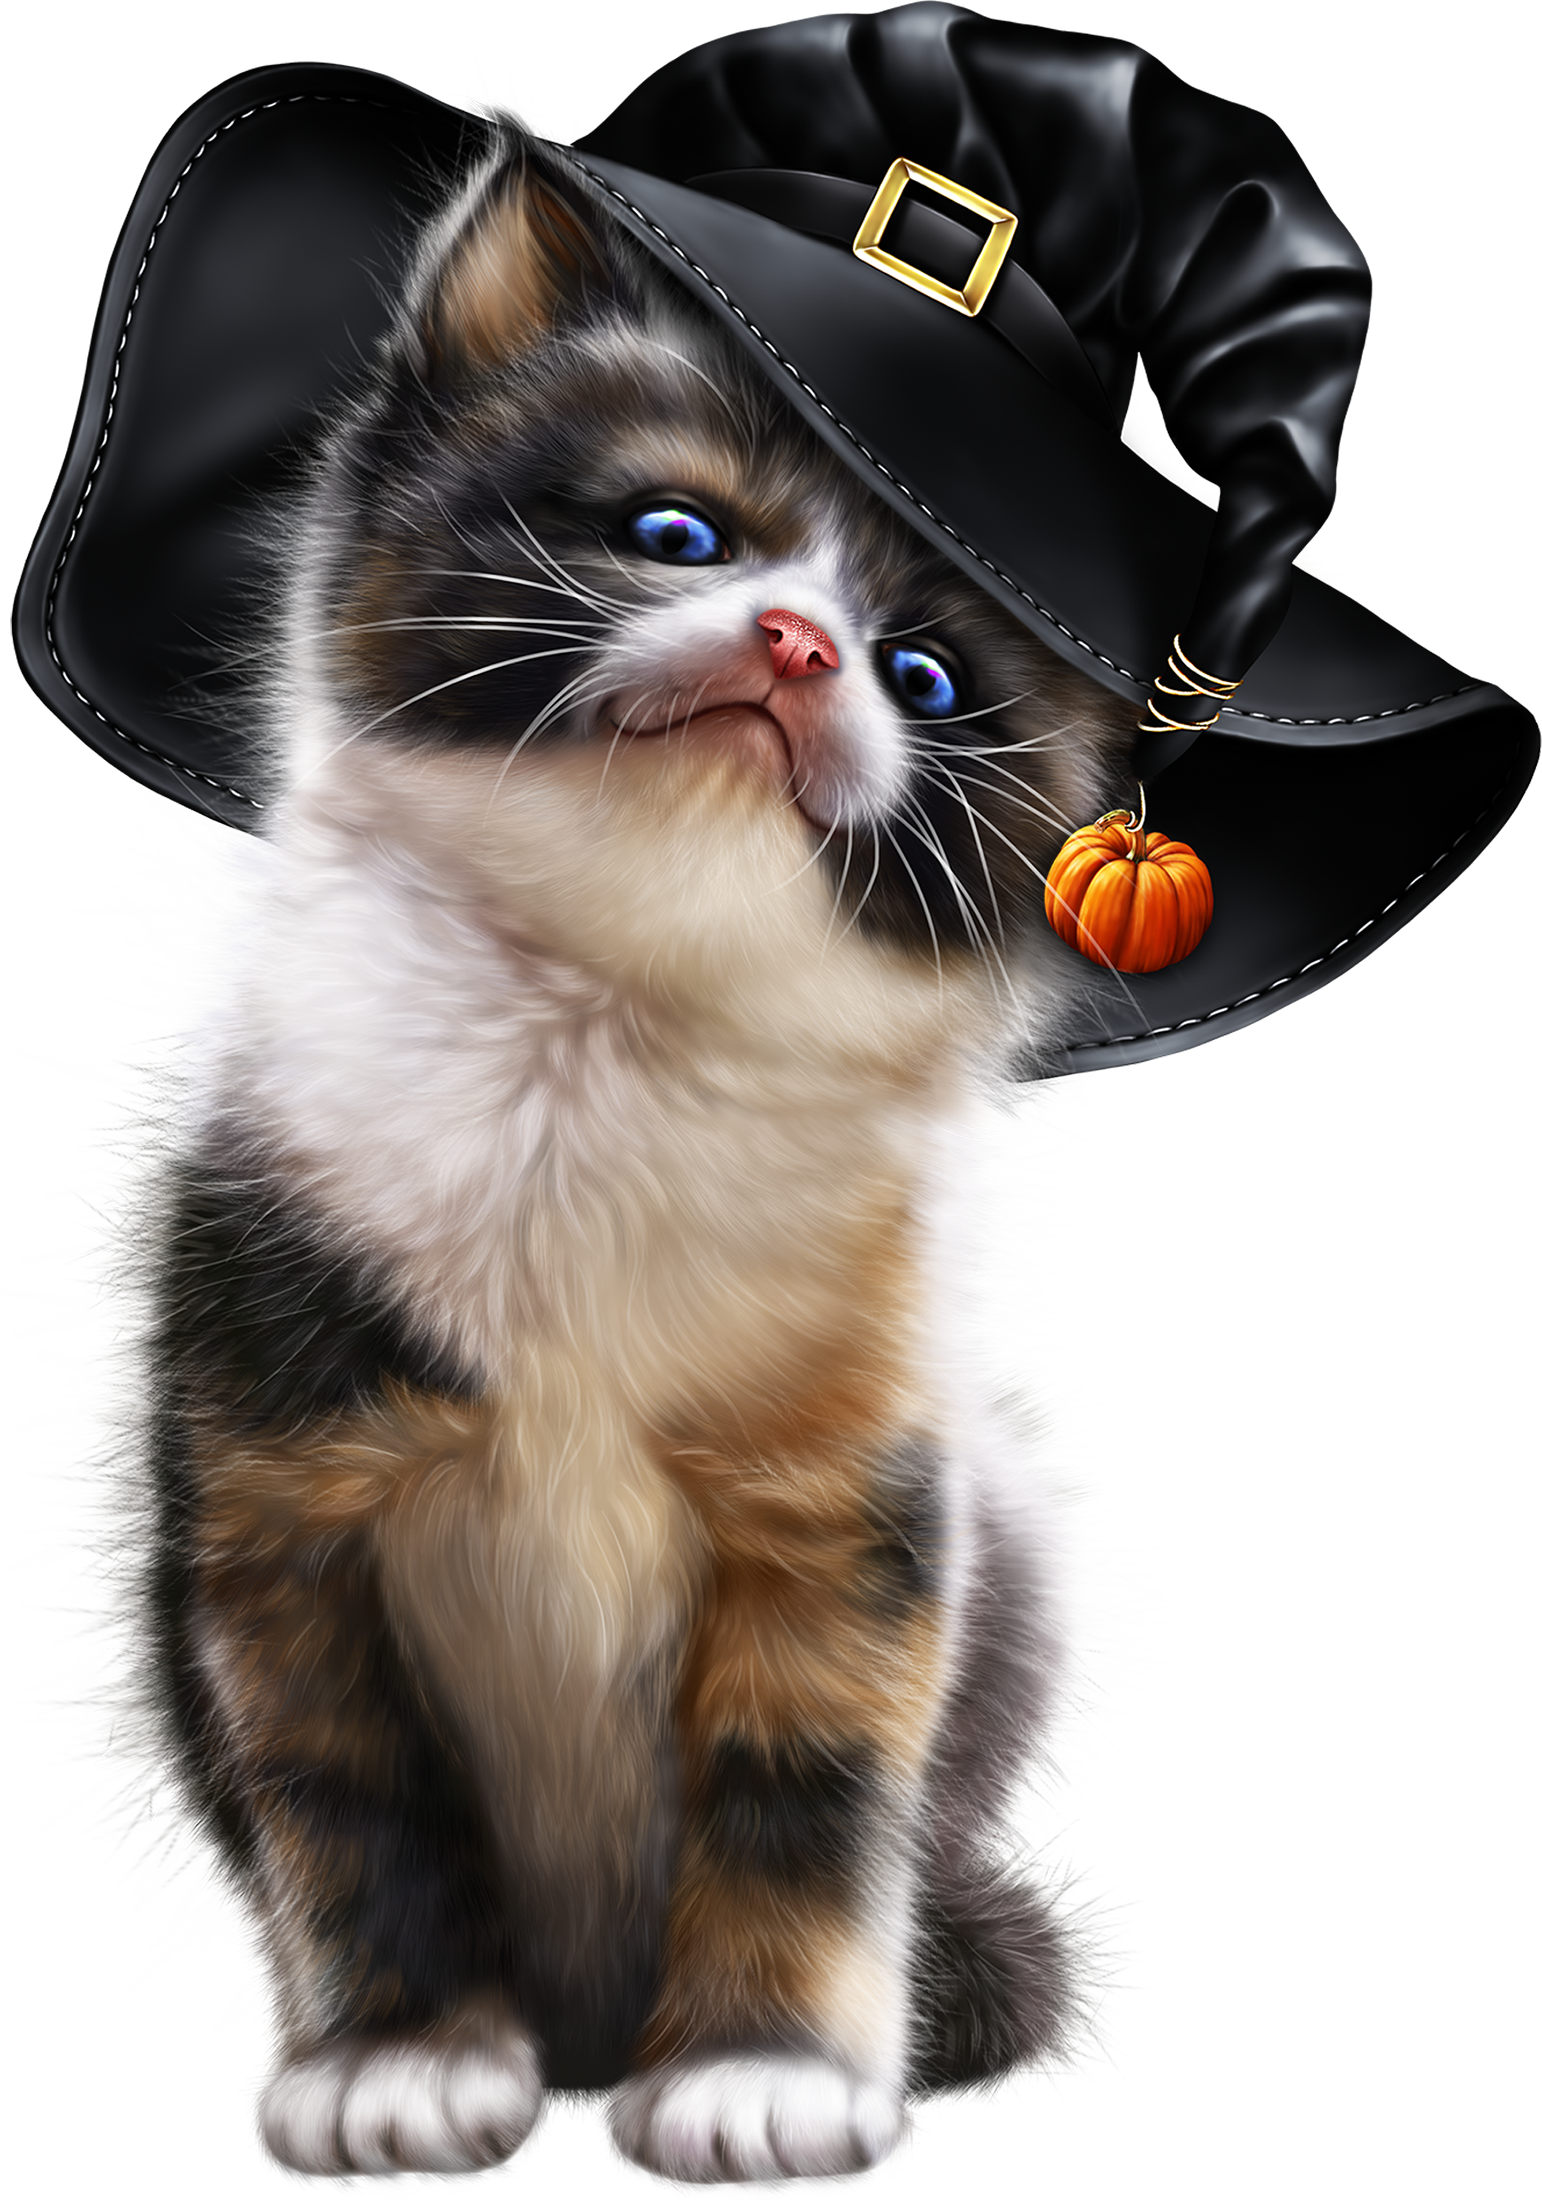 ca ac ff. Kittens clipart calico